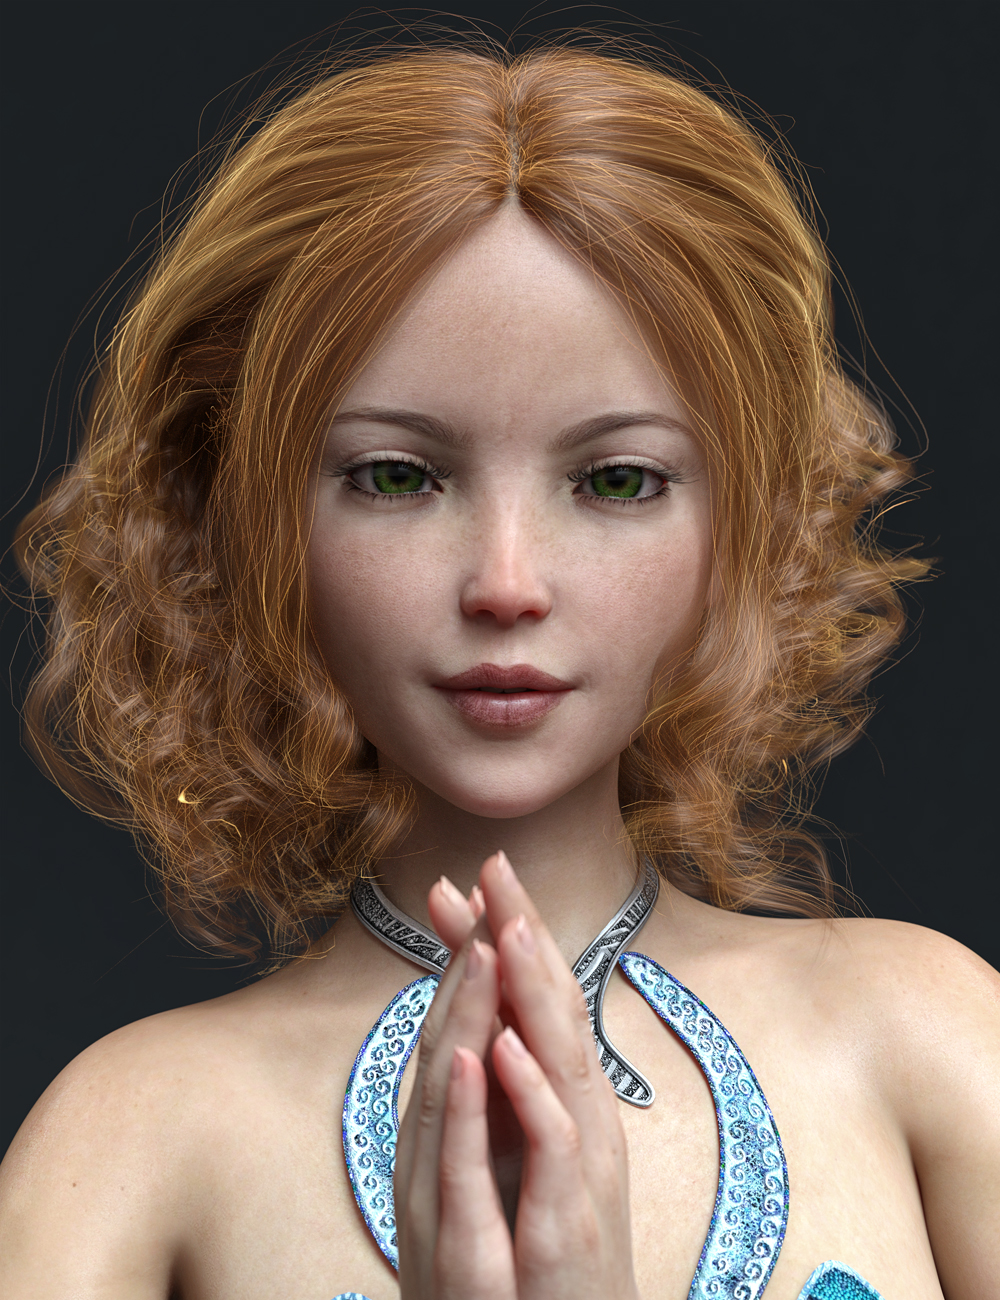 Thaysle HD for Geneis 8 Female by: Marcius, 3D Models by Daz 3D